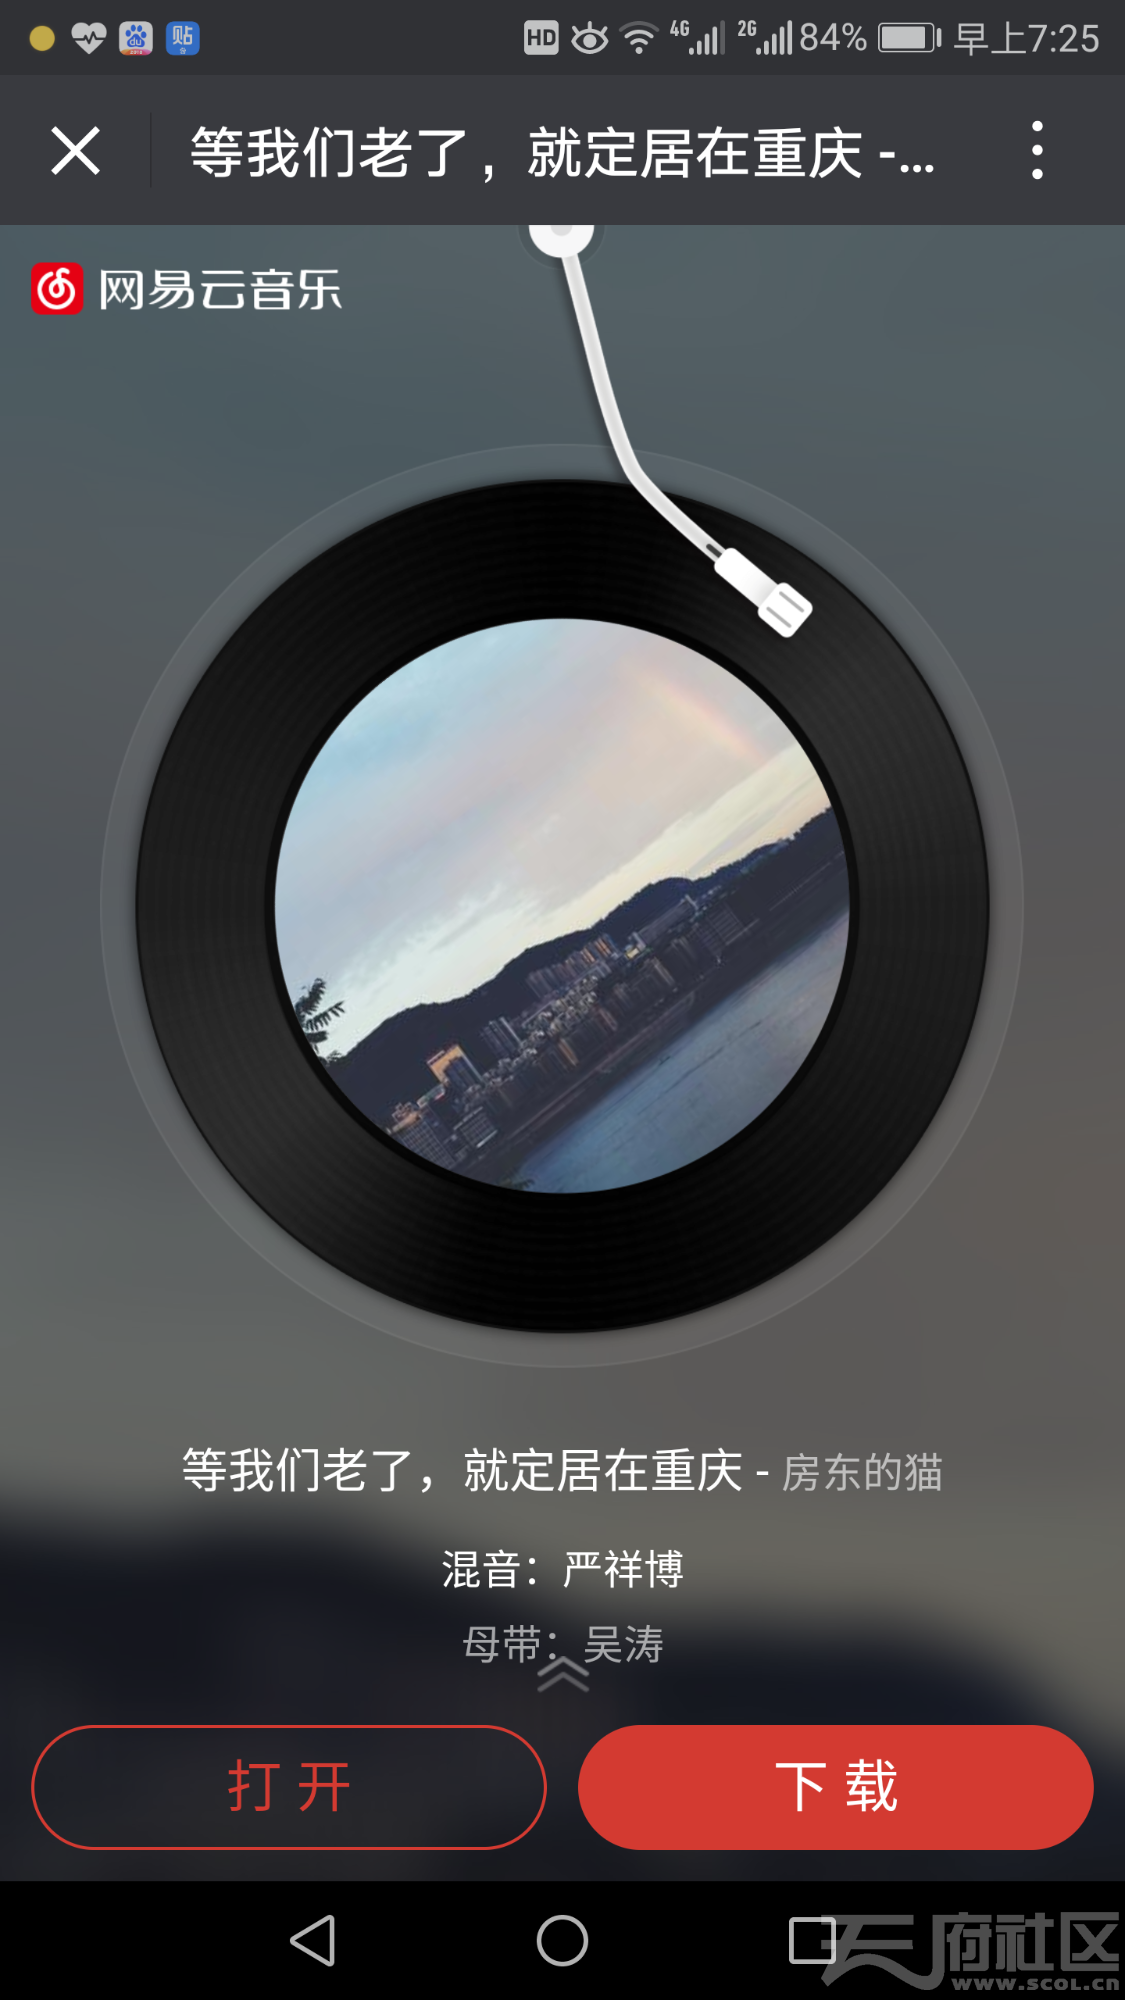 Screenshot_20180110-072538.png